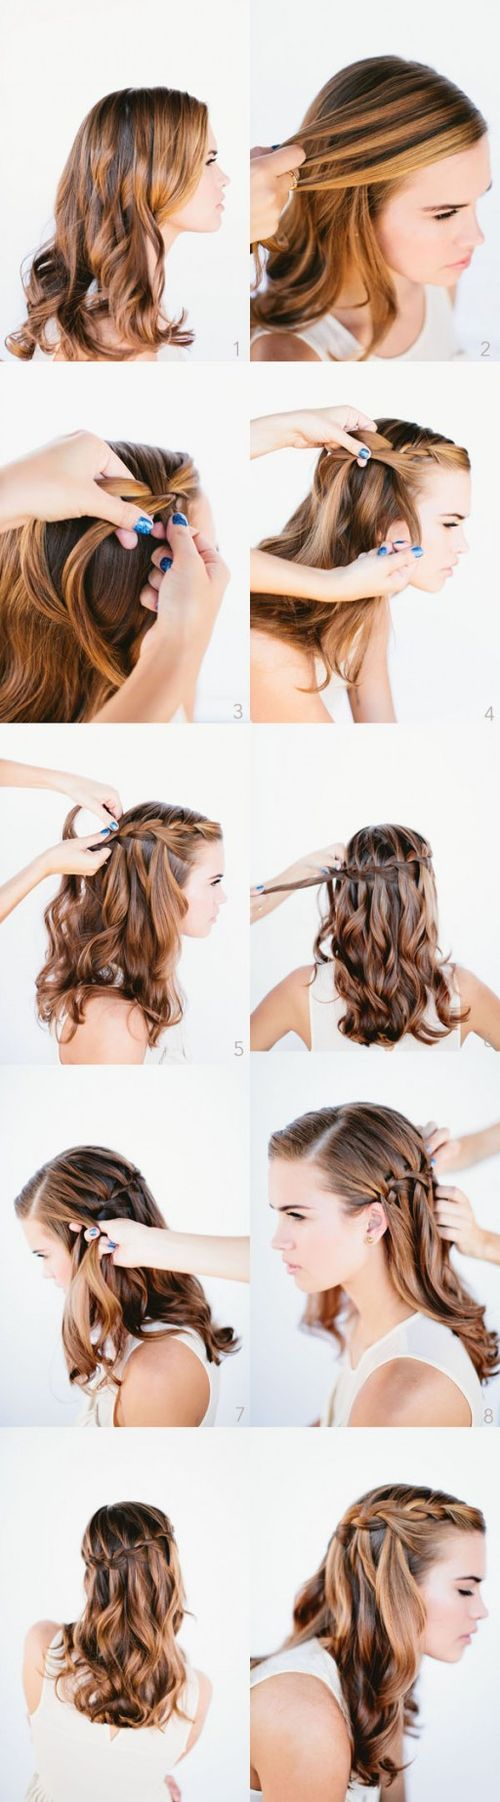 How to do waterfall braid wedding hairstyle for long hairs step by step DIY tutorial instructions How To Instructions on imgfave